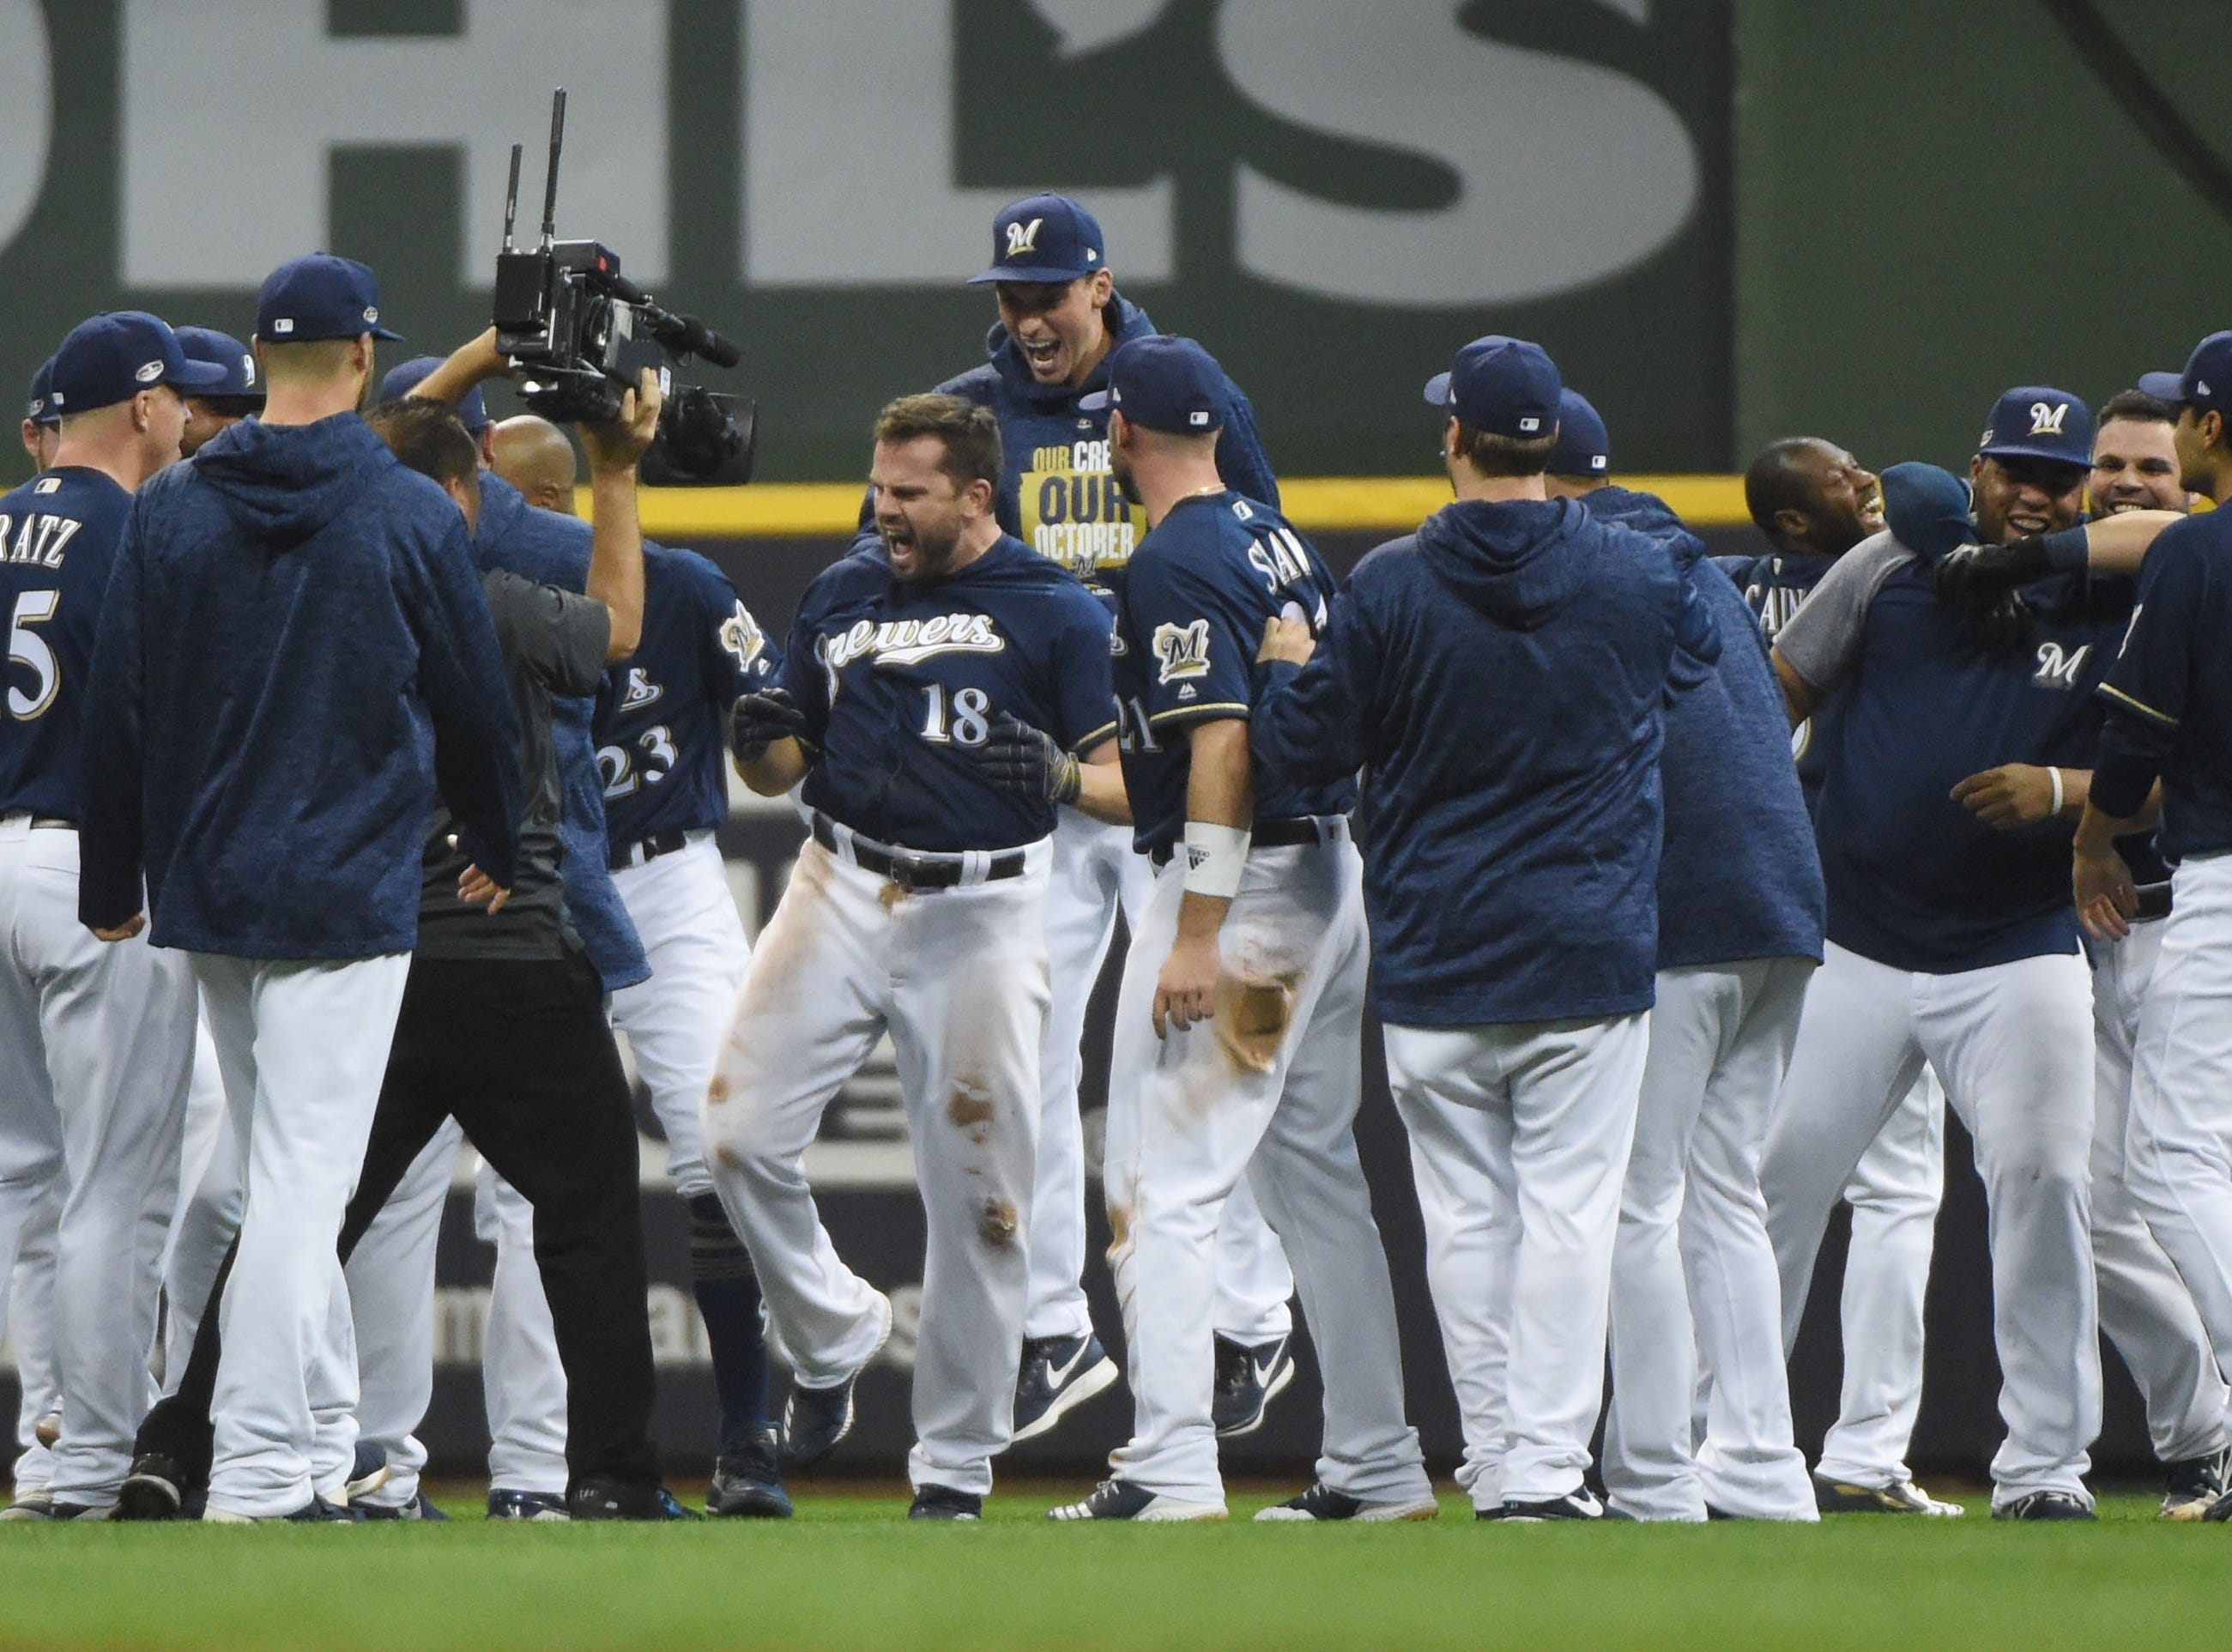 NLDS Game 1: Brewers players celebrate Mike Moustakas' walk-off single in the 10th inning.